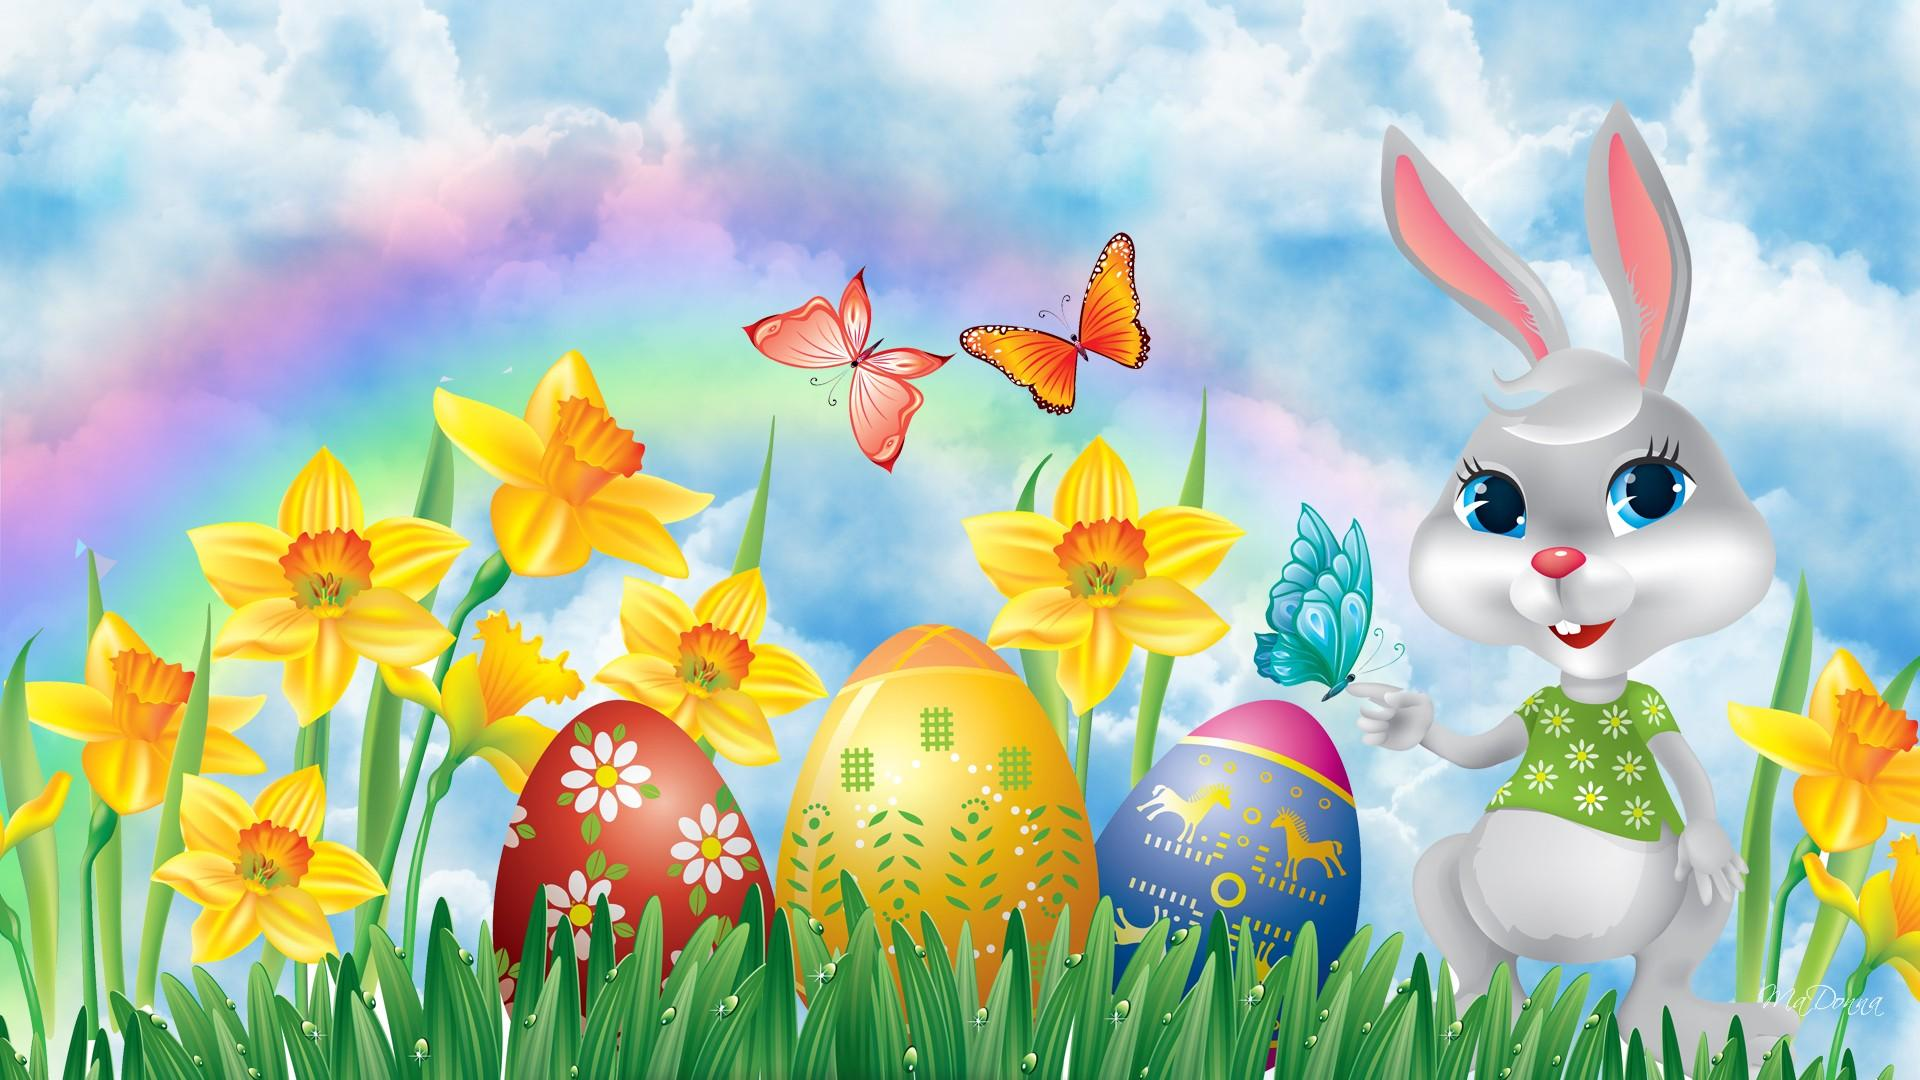 Easter Bunny Easter Eggs and Daffodils Full HD Wallpaper 1920x1080